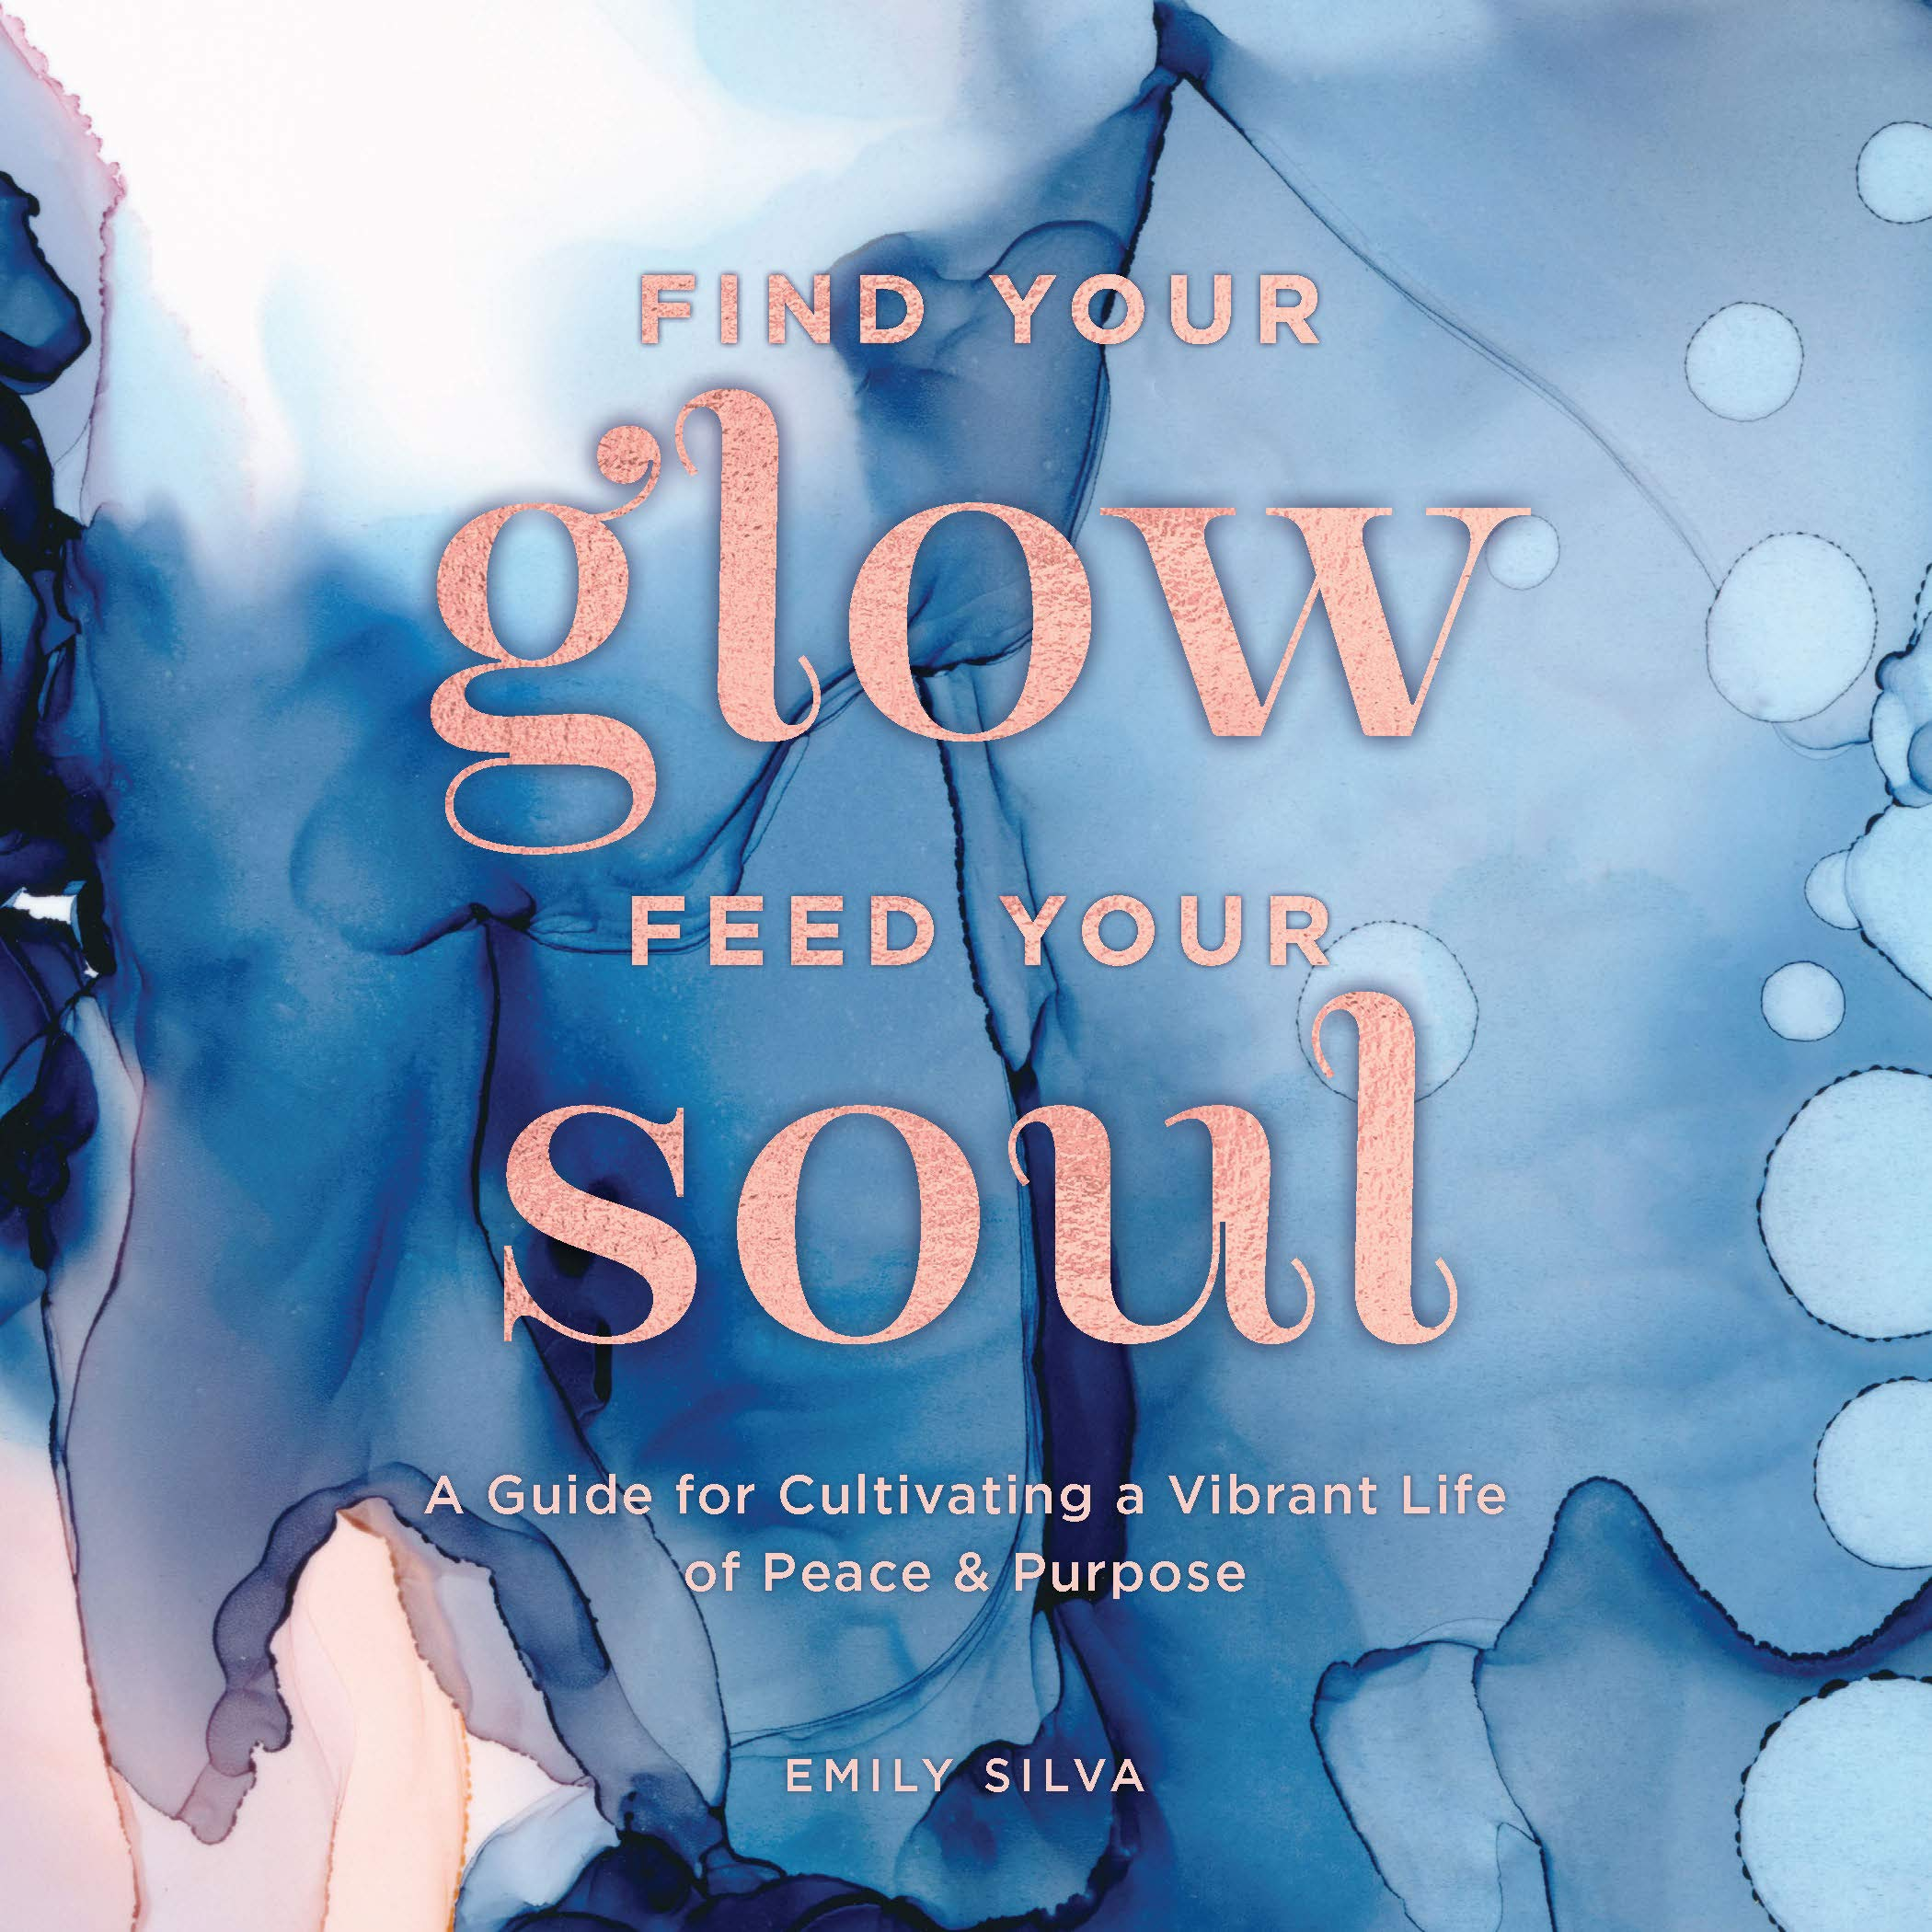 Find Your Glow, Feed Your Soul: A Guide for Cultivating a Vibrant Life of Peace & Purpose (Everyday Inspiration, 3)